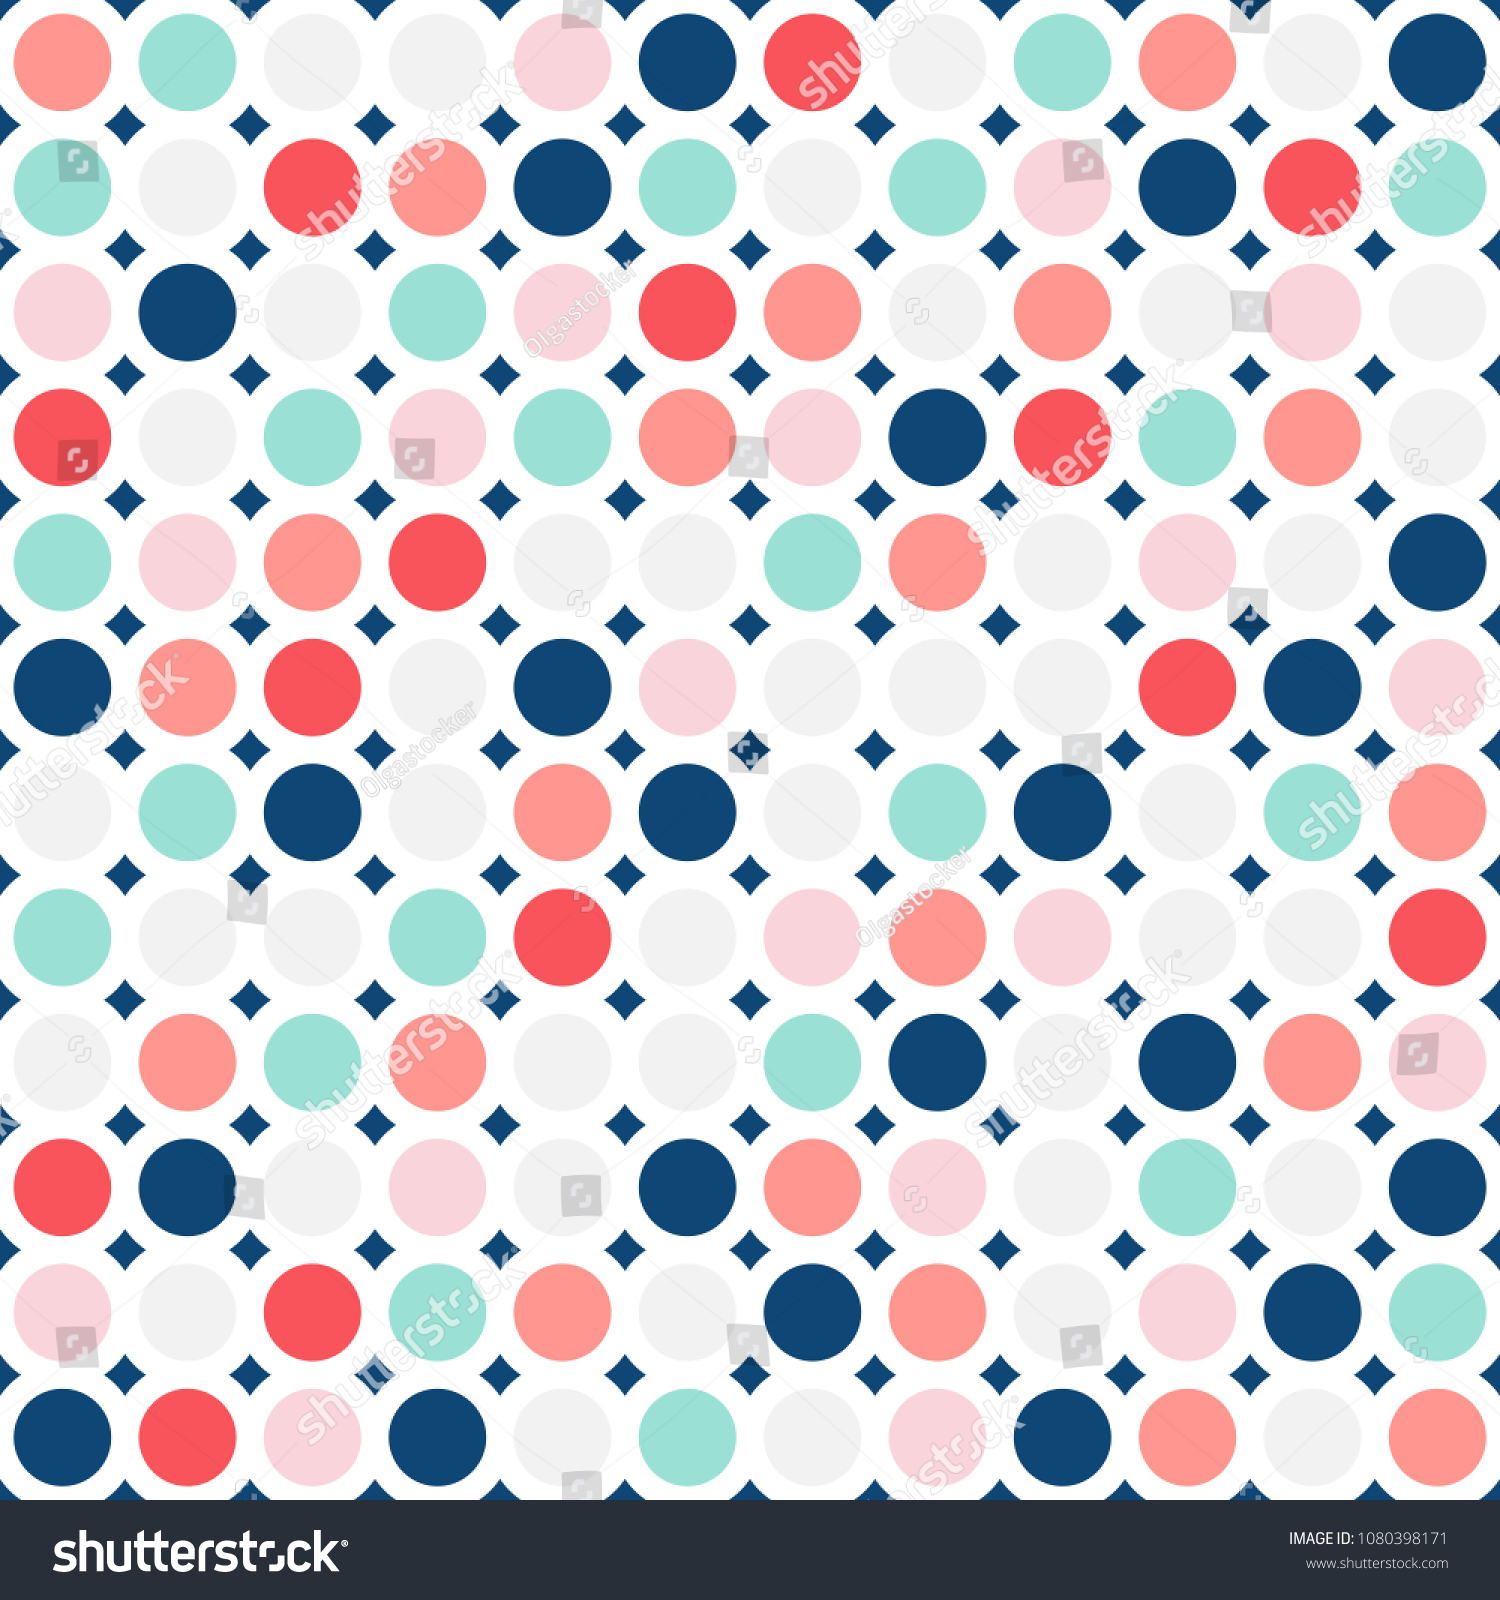 Fashionable Geometric Background In Trendy Colors Soft Pink, Navy